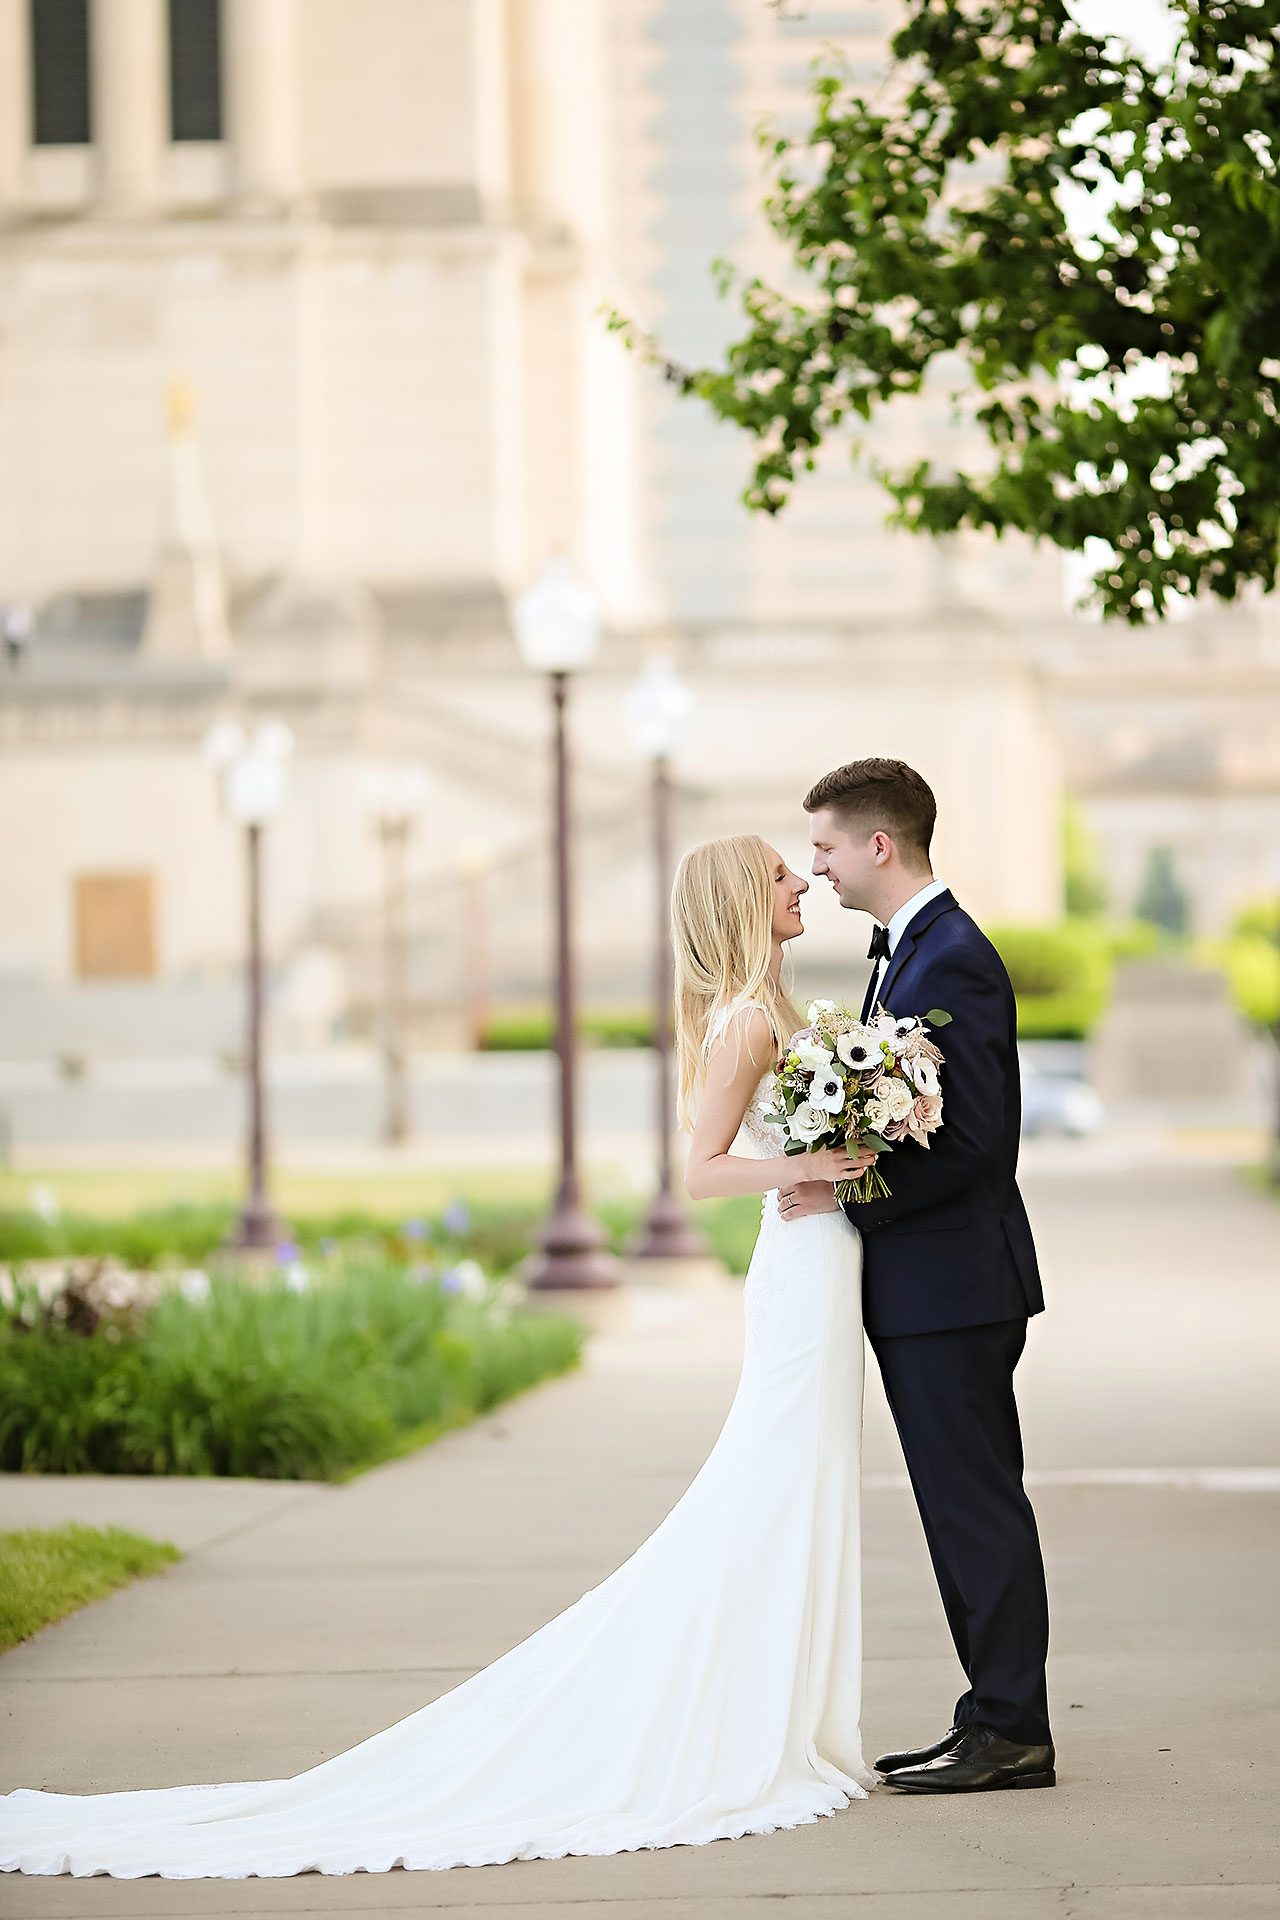 Molly Declan Scottish Rite Indianapolis Wedding 195